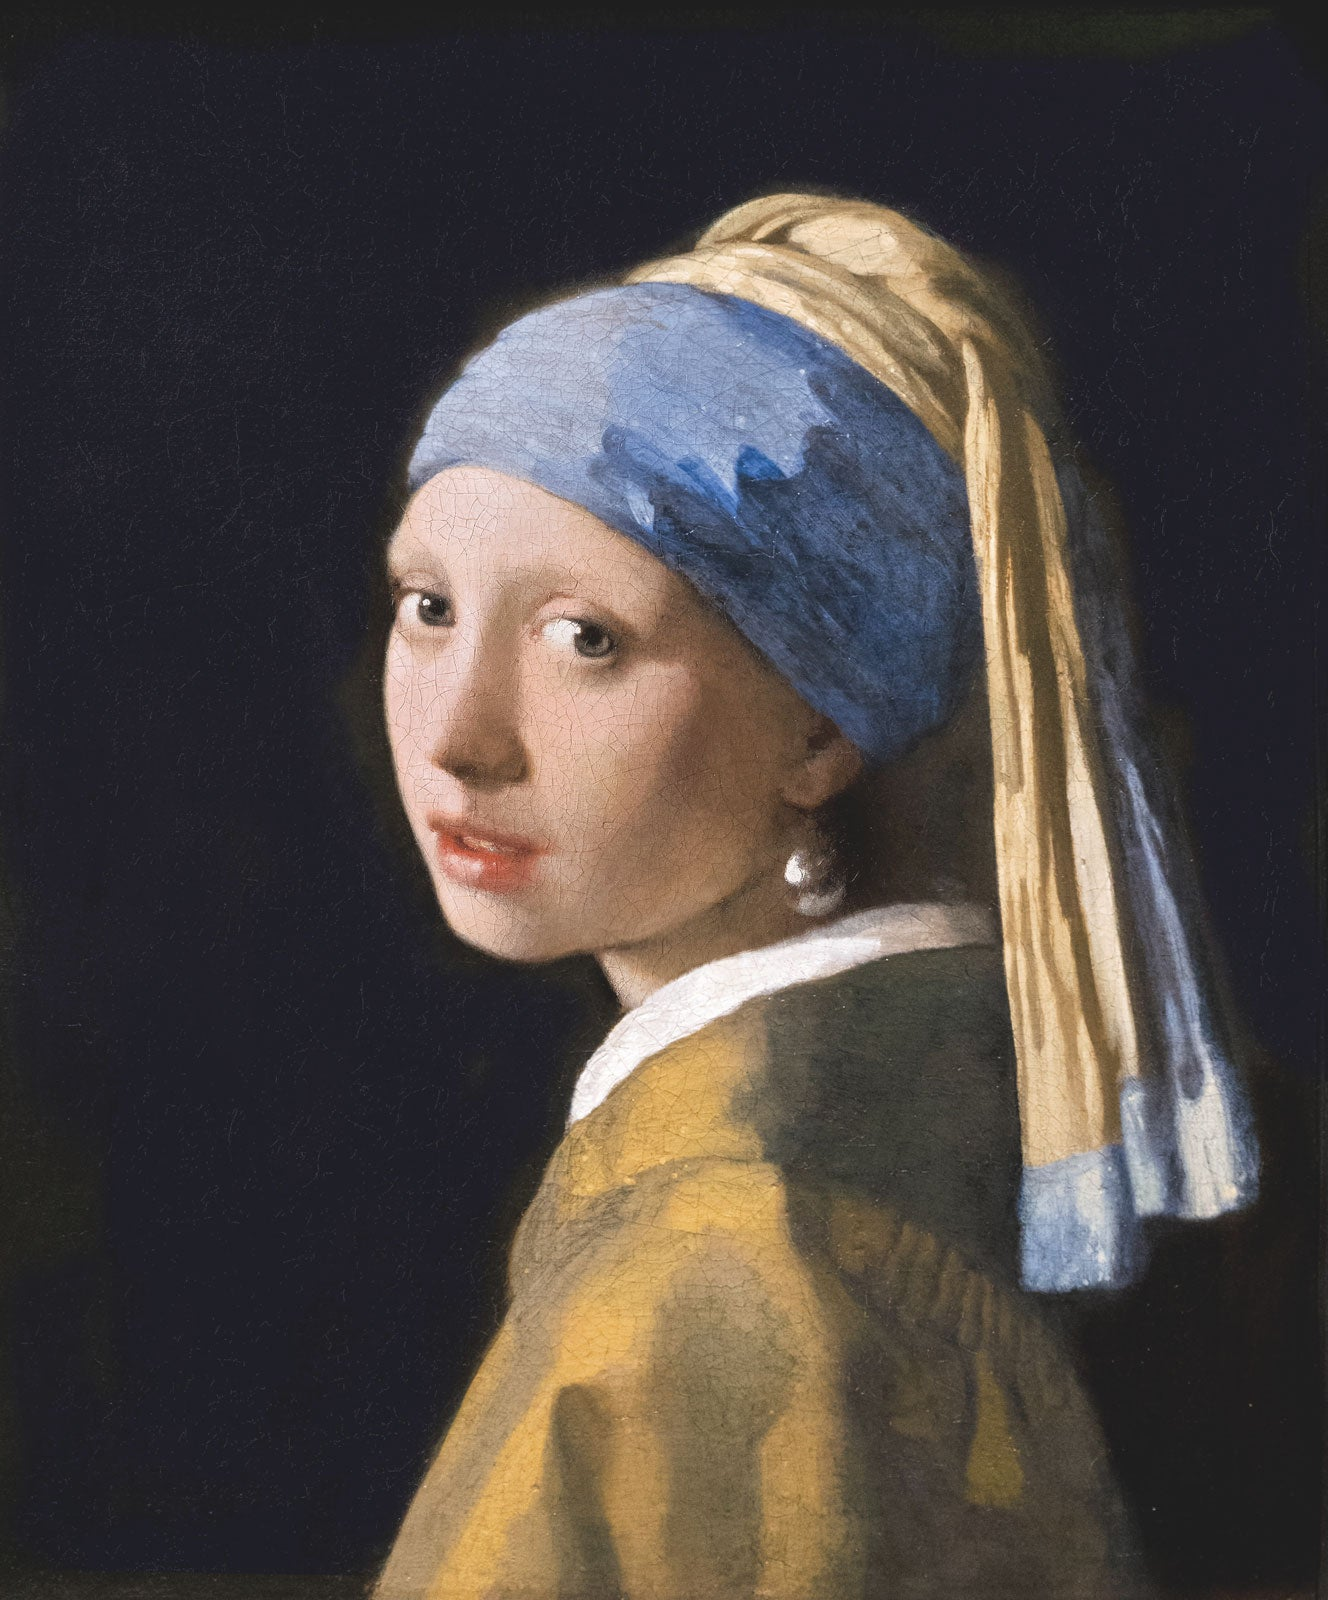 Girl With a Pearl Earring by Johannes Vermeer - Organic T-Shirt